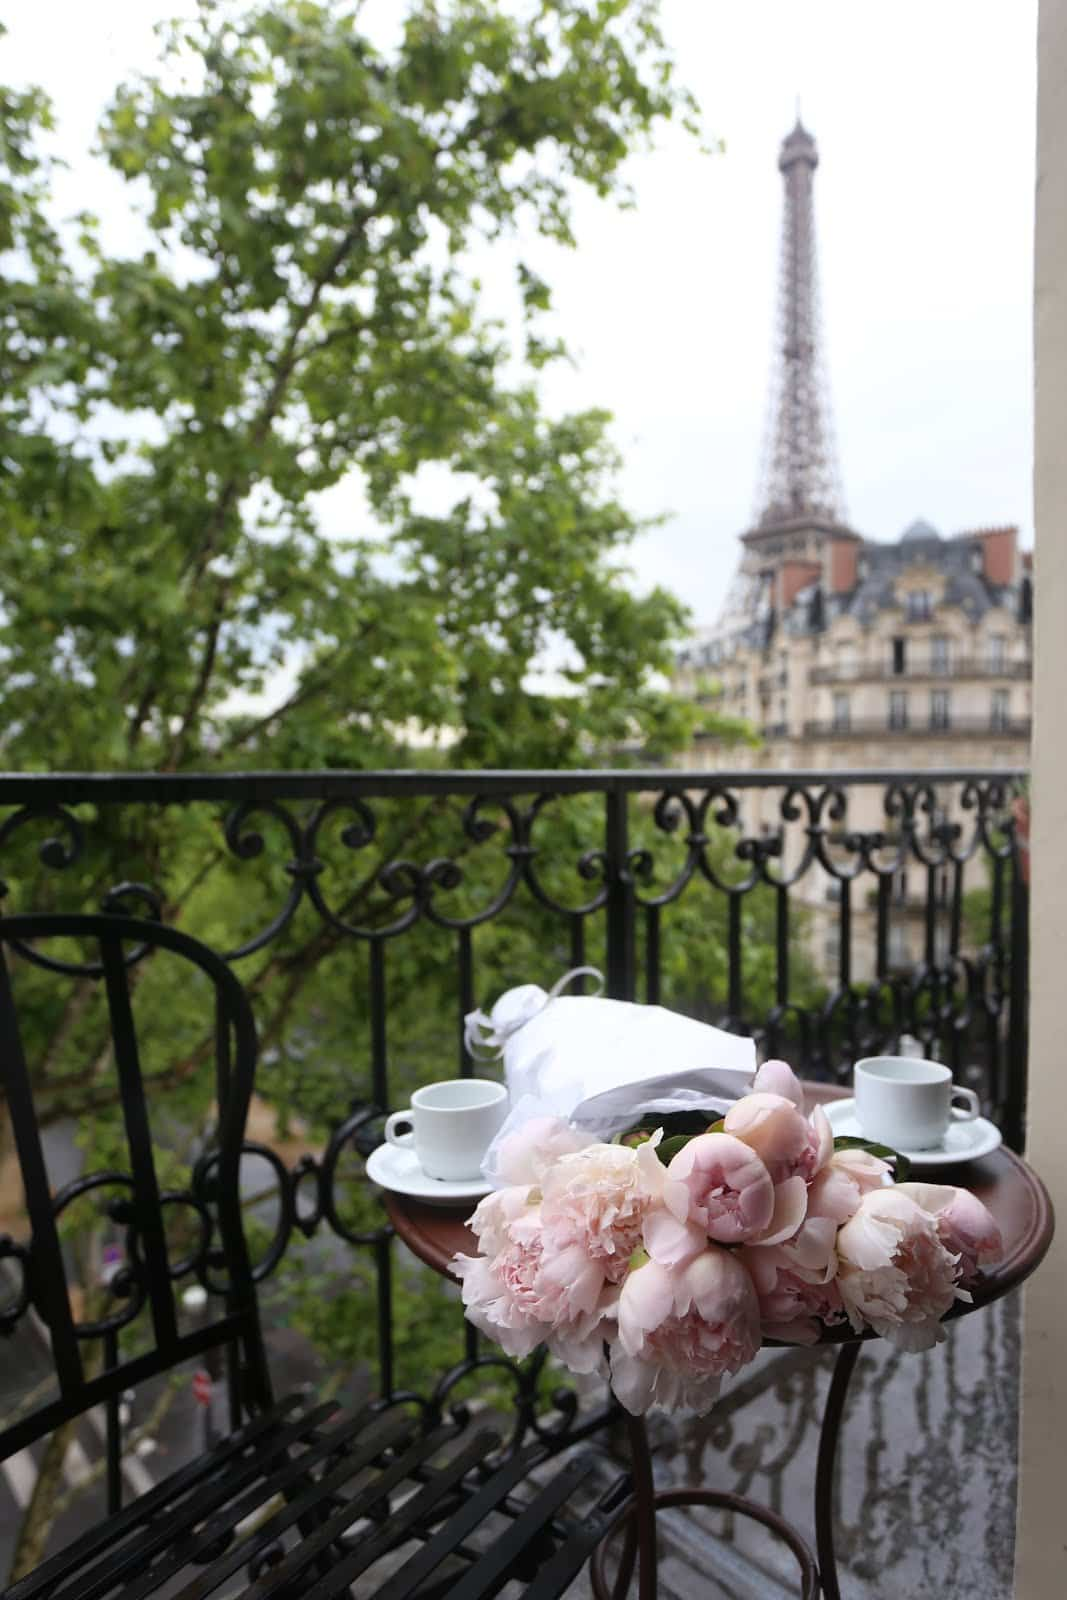 Peonies on a table in Paris